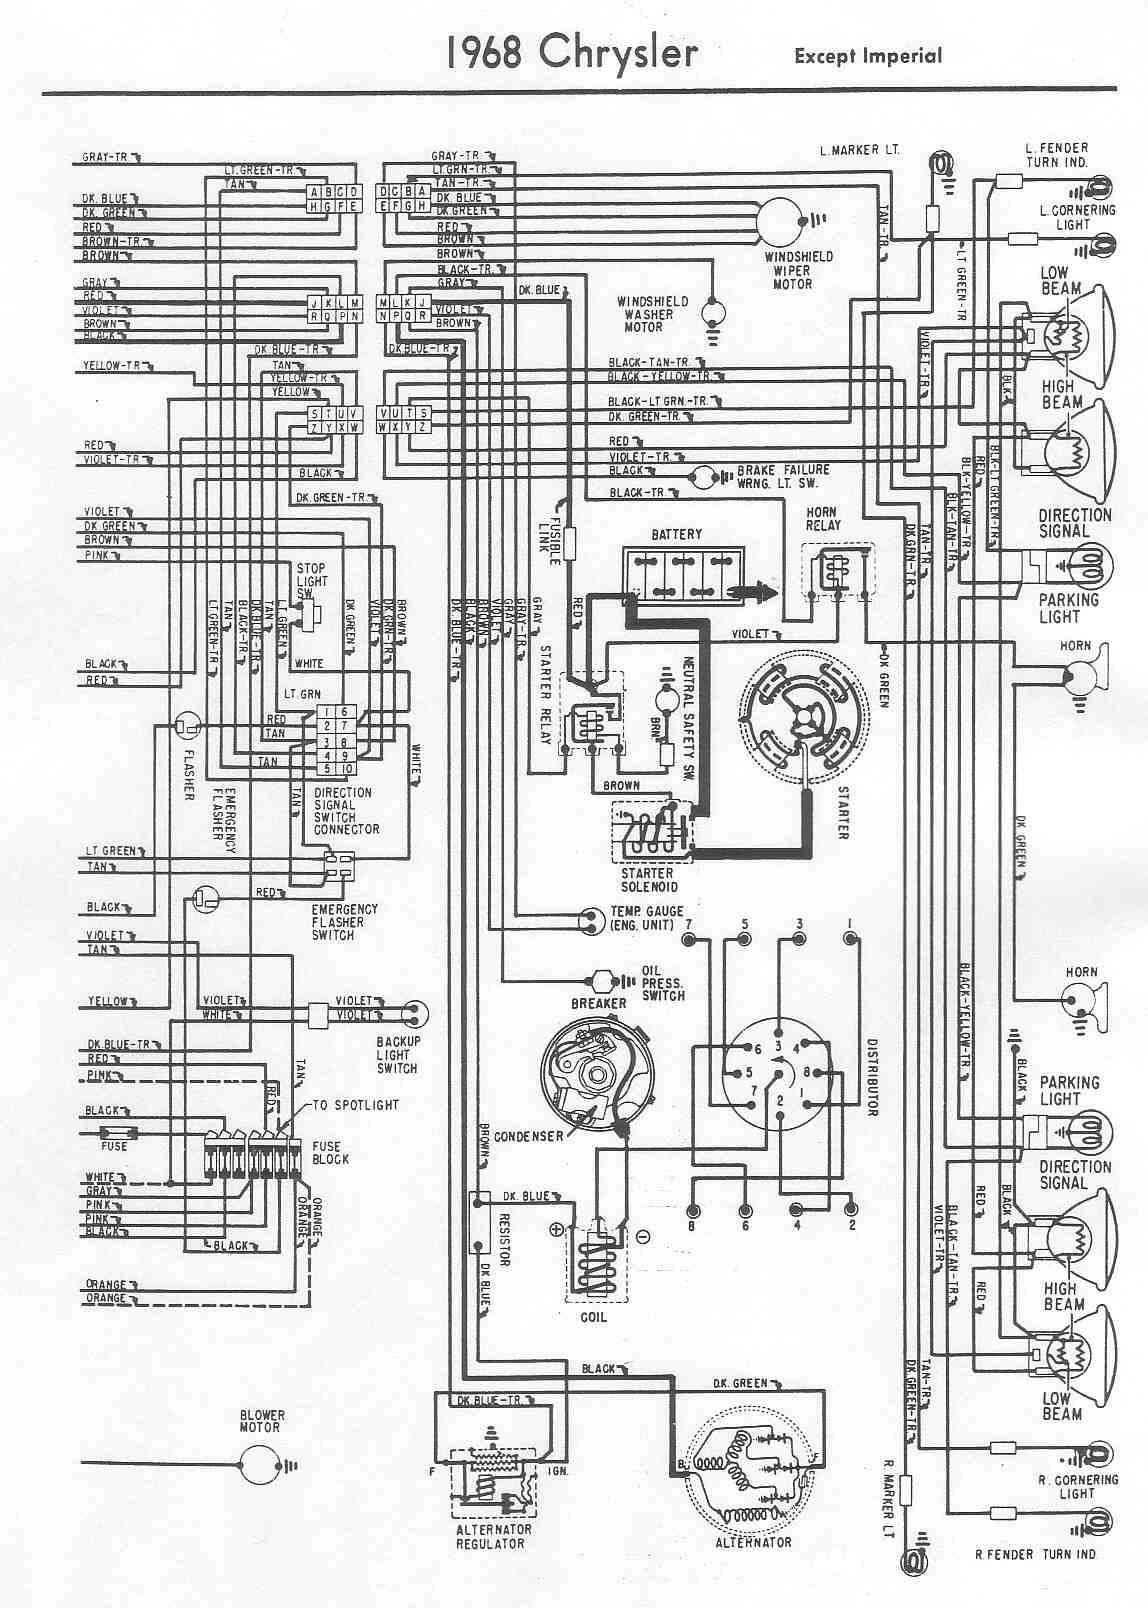 1966 Gto Wiper Motor Wiring Diagram Master Blogs 1964 Cadillac Deville Diagrams Schematic For 1970 Library Rh 94 Backlink Auktion De 67 Engine